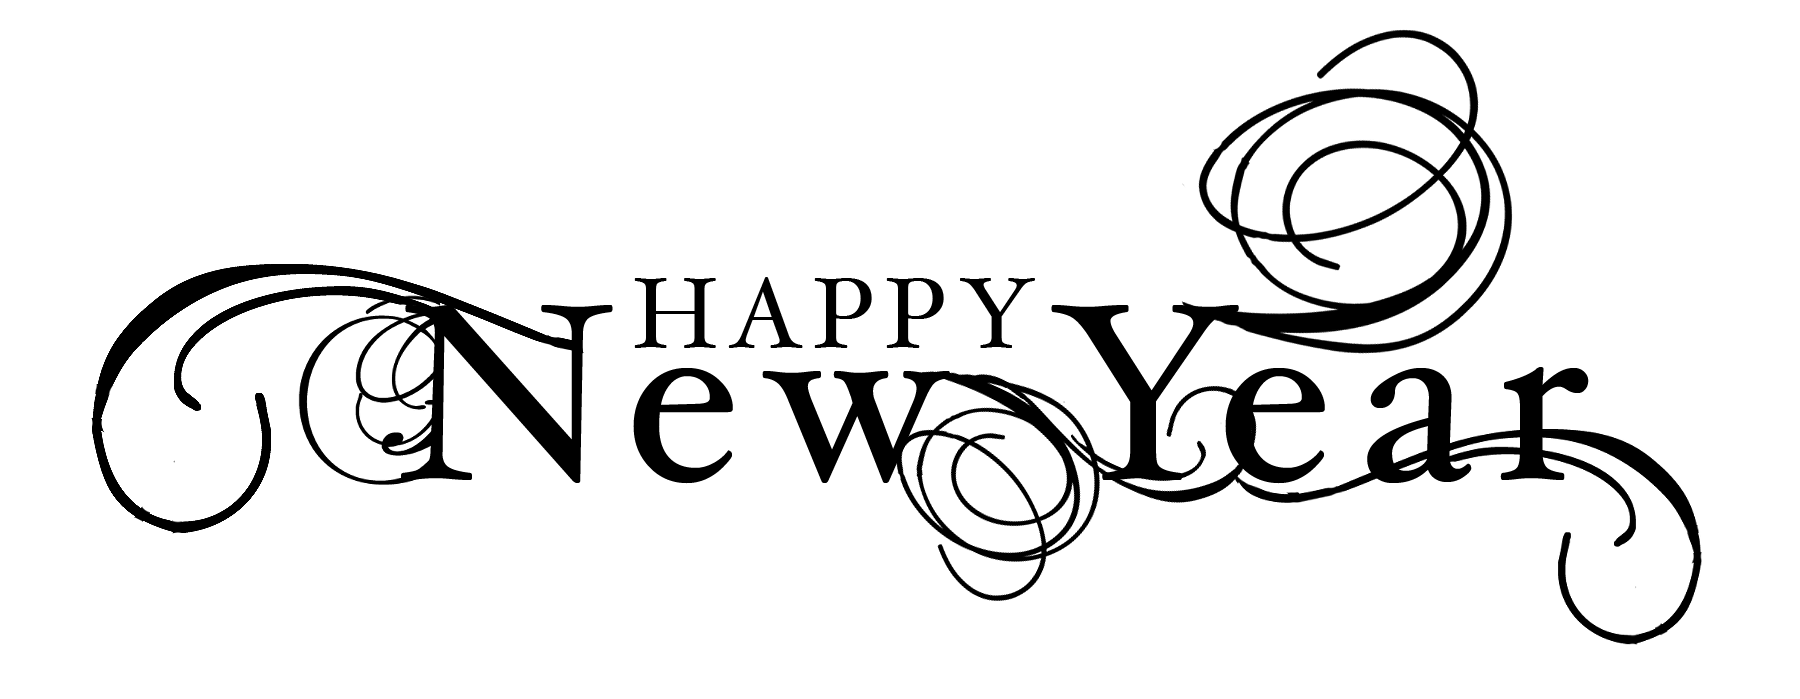 svg Free happy new years clipart. Black and white year